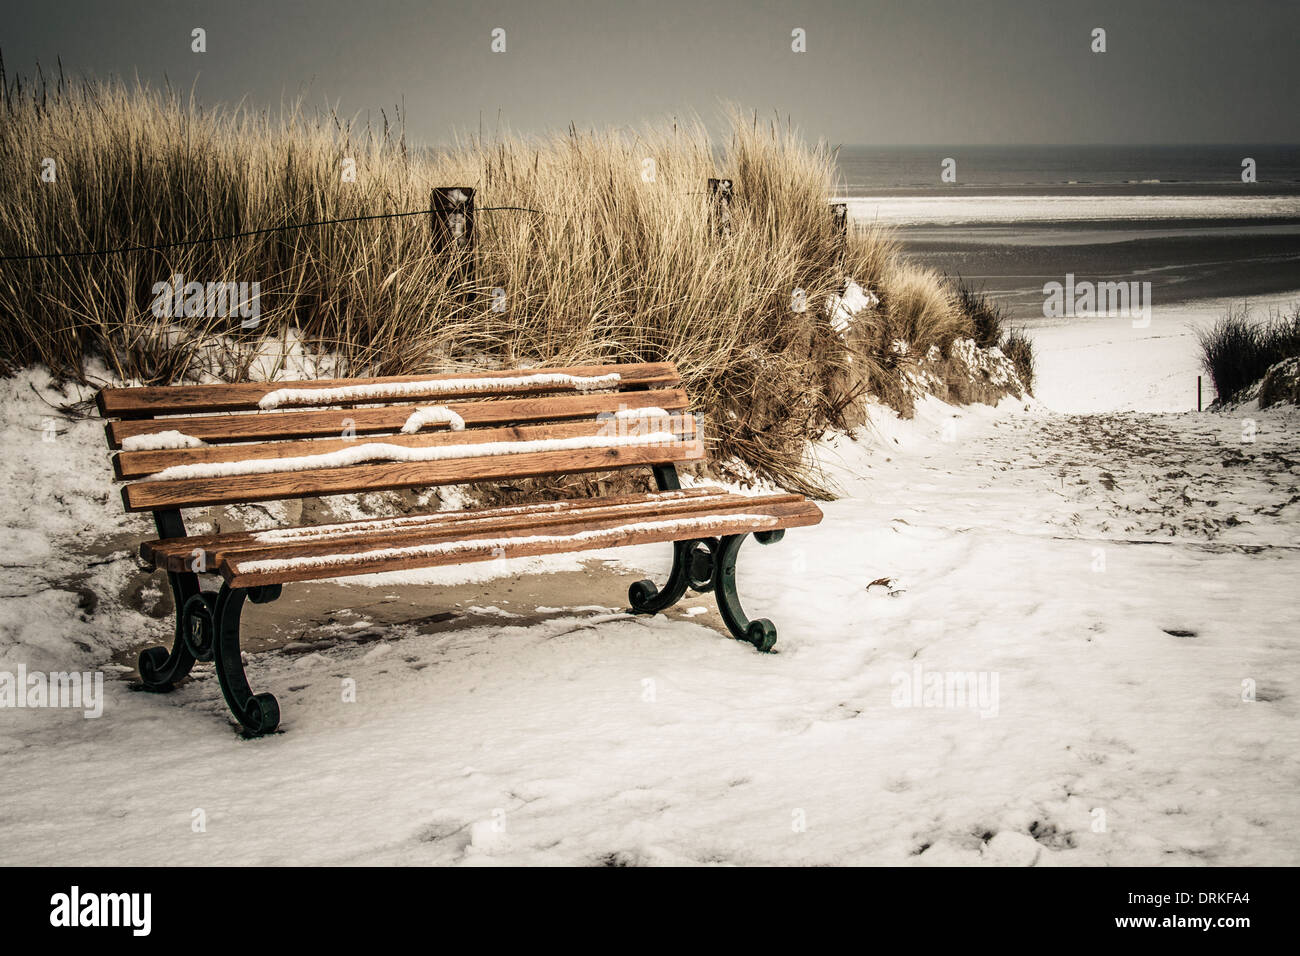 Germany, Lower Saxony, bench at the beach of Langeoog Stock Photo